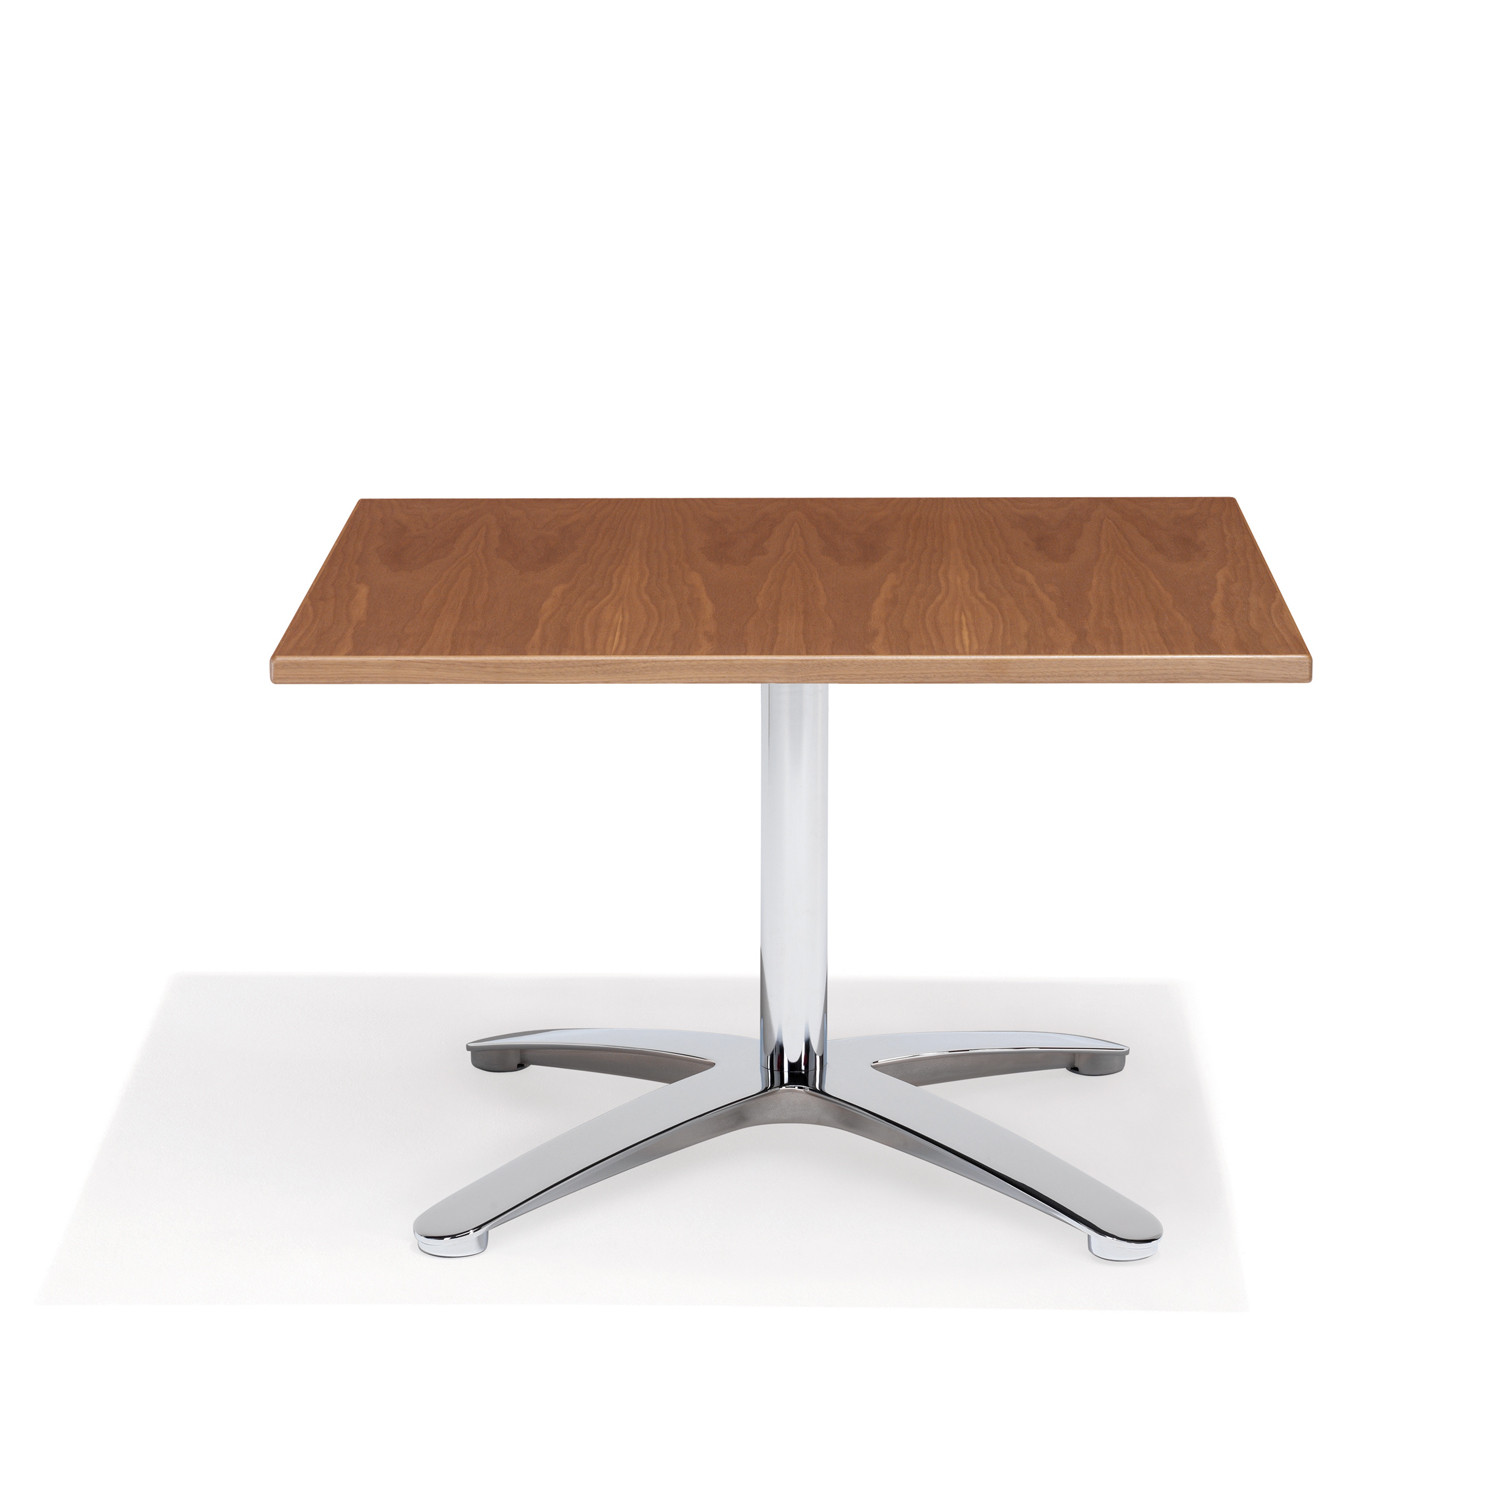 8200 Volpe Square Occasional Table with wooden top